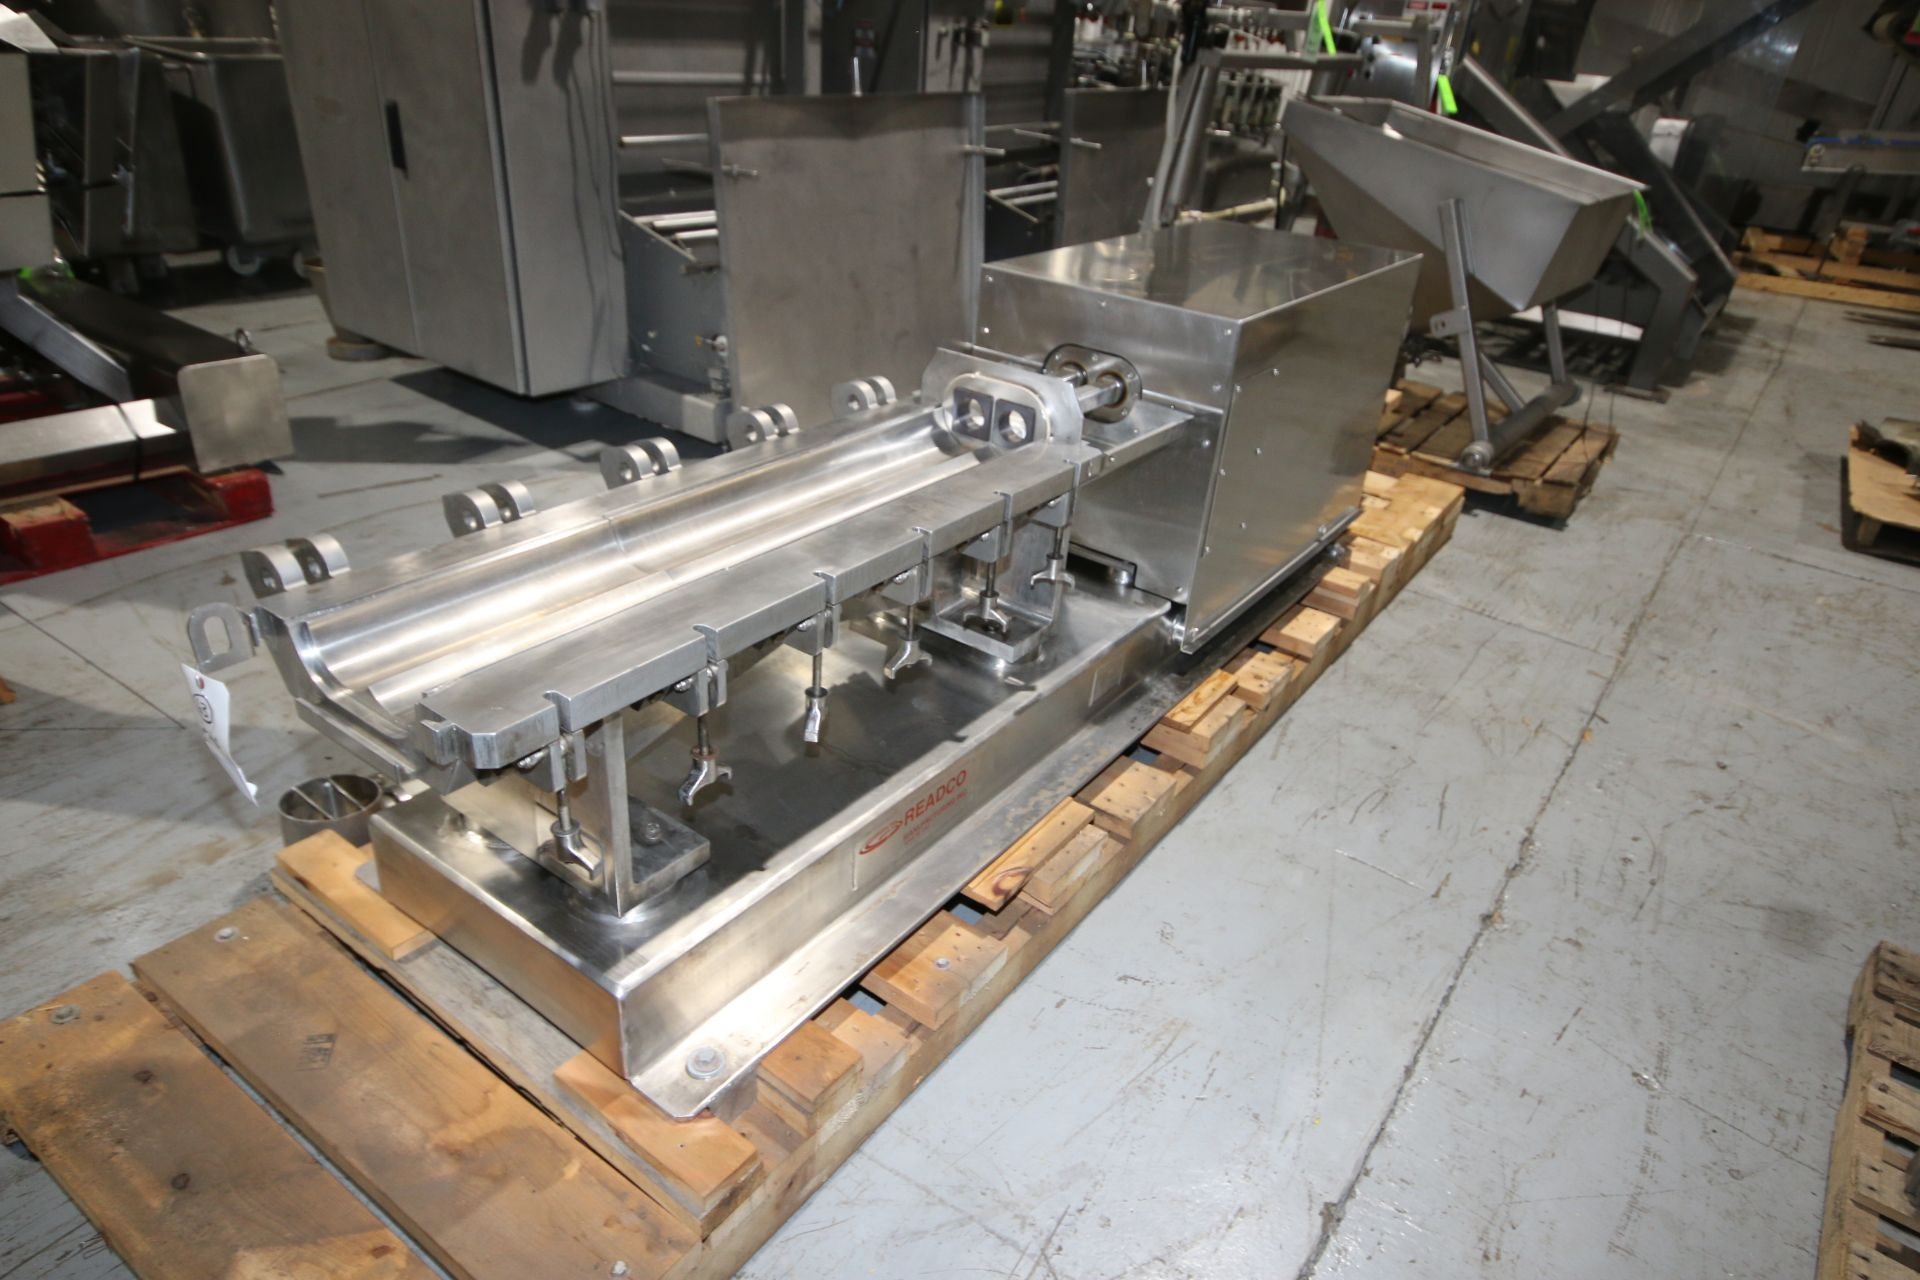 Lot 10 - Readco S/S Continuous Mixer, Machine: 5 C.P., S/N 108512, Weight: 3,300 lbs, P.O. Number: